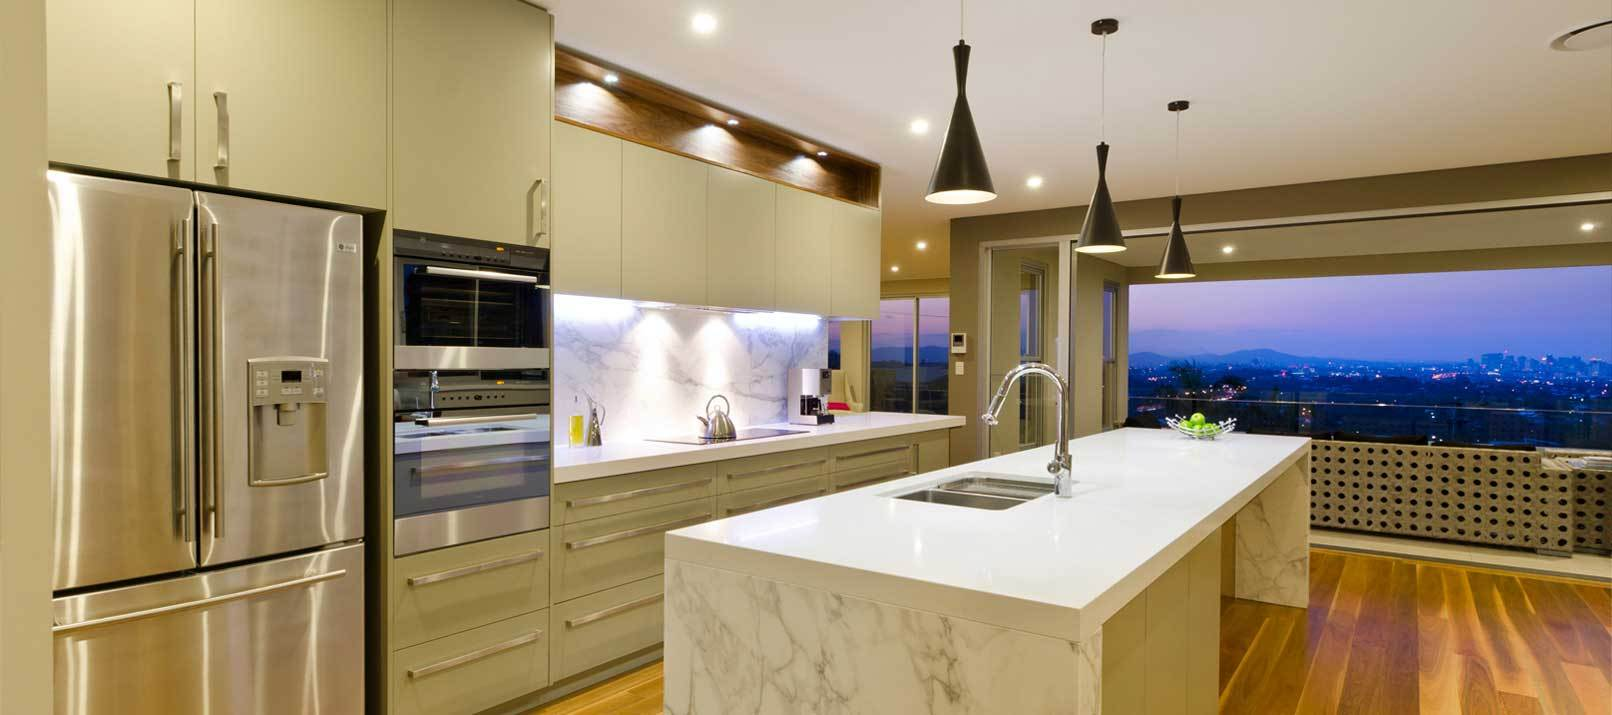 Designed Kitchens. Best New Kitchen Techs to Add Your Remodeling Plan  Ultimate